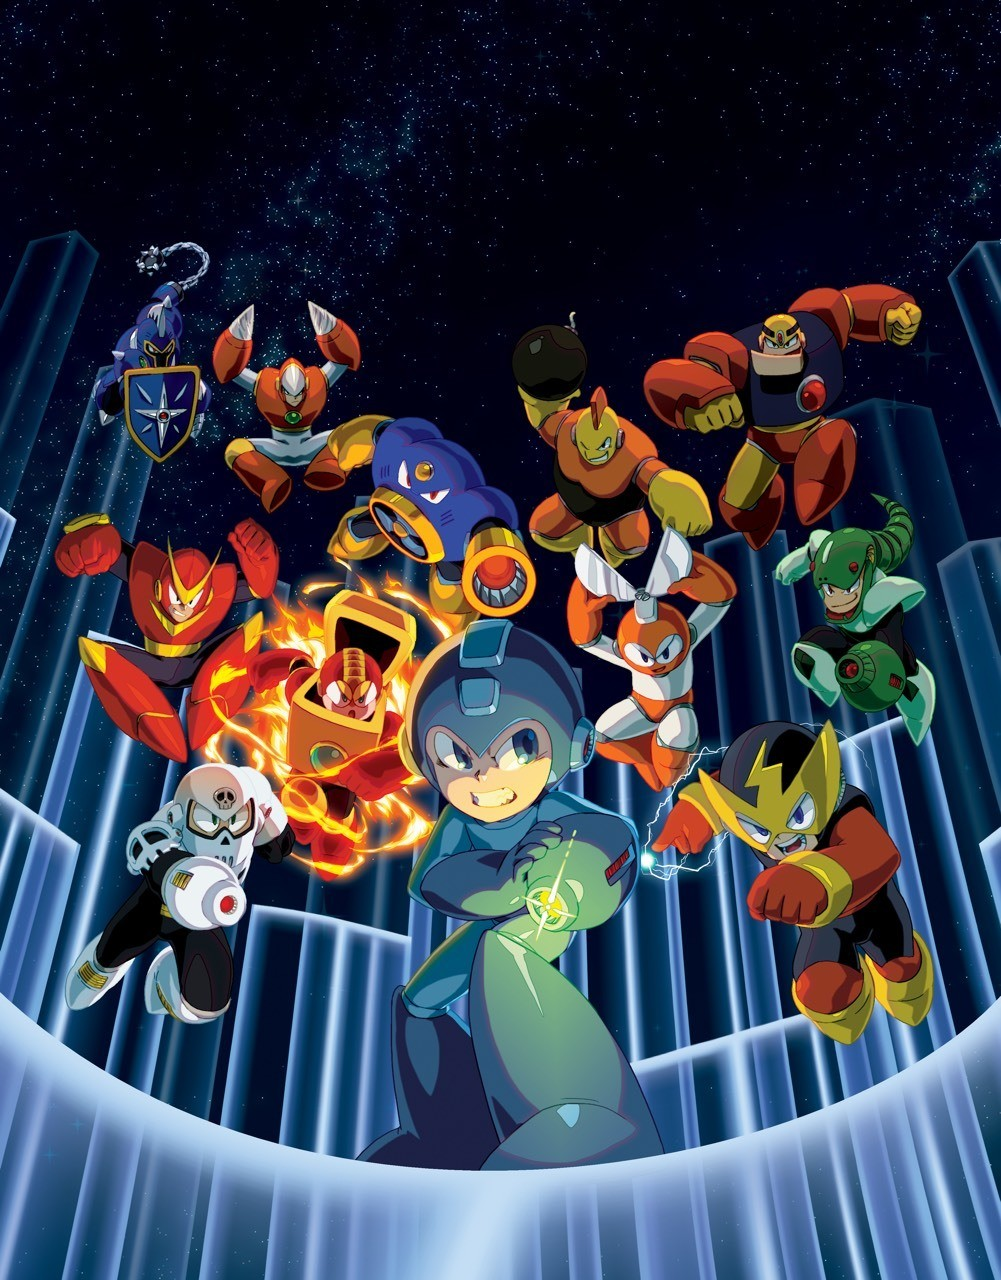 Official art from the Mega Man Legacy Collection game.